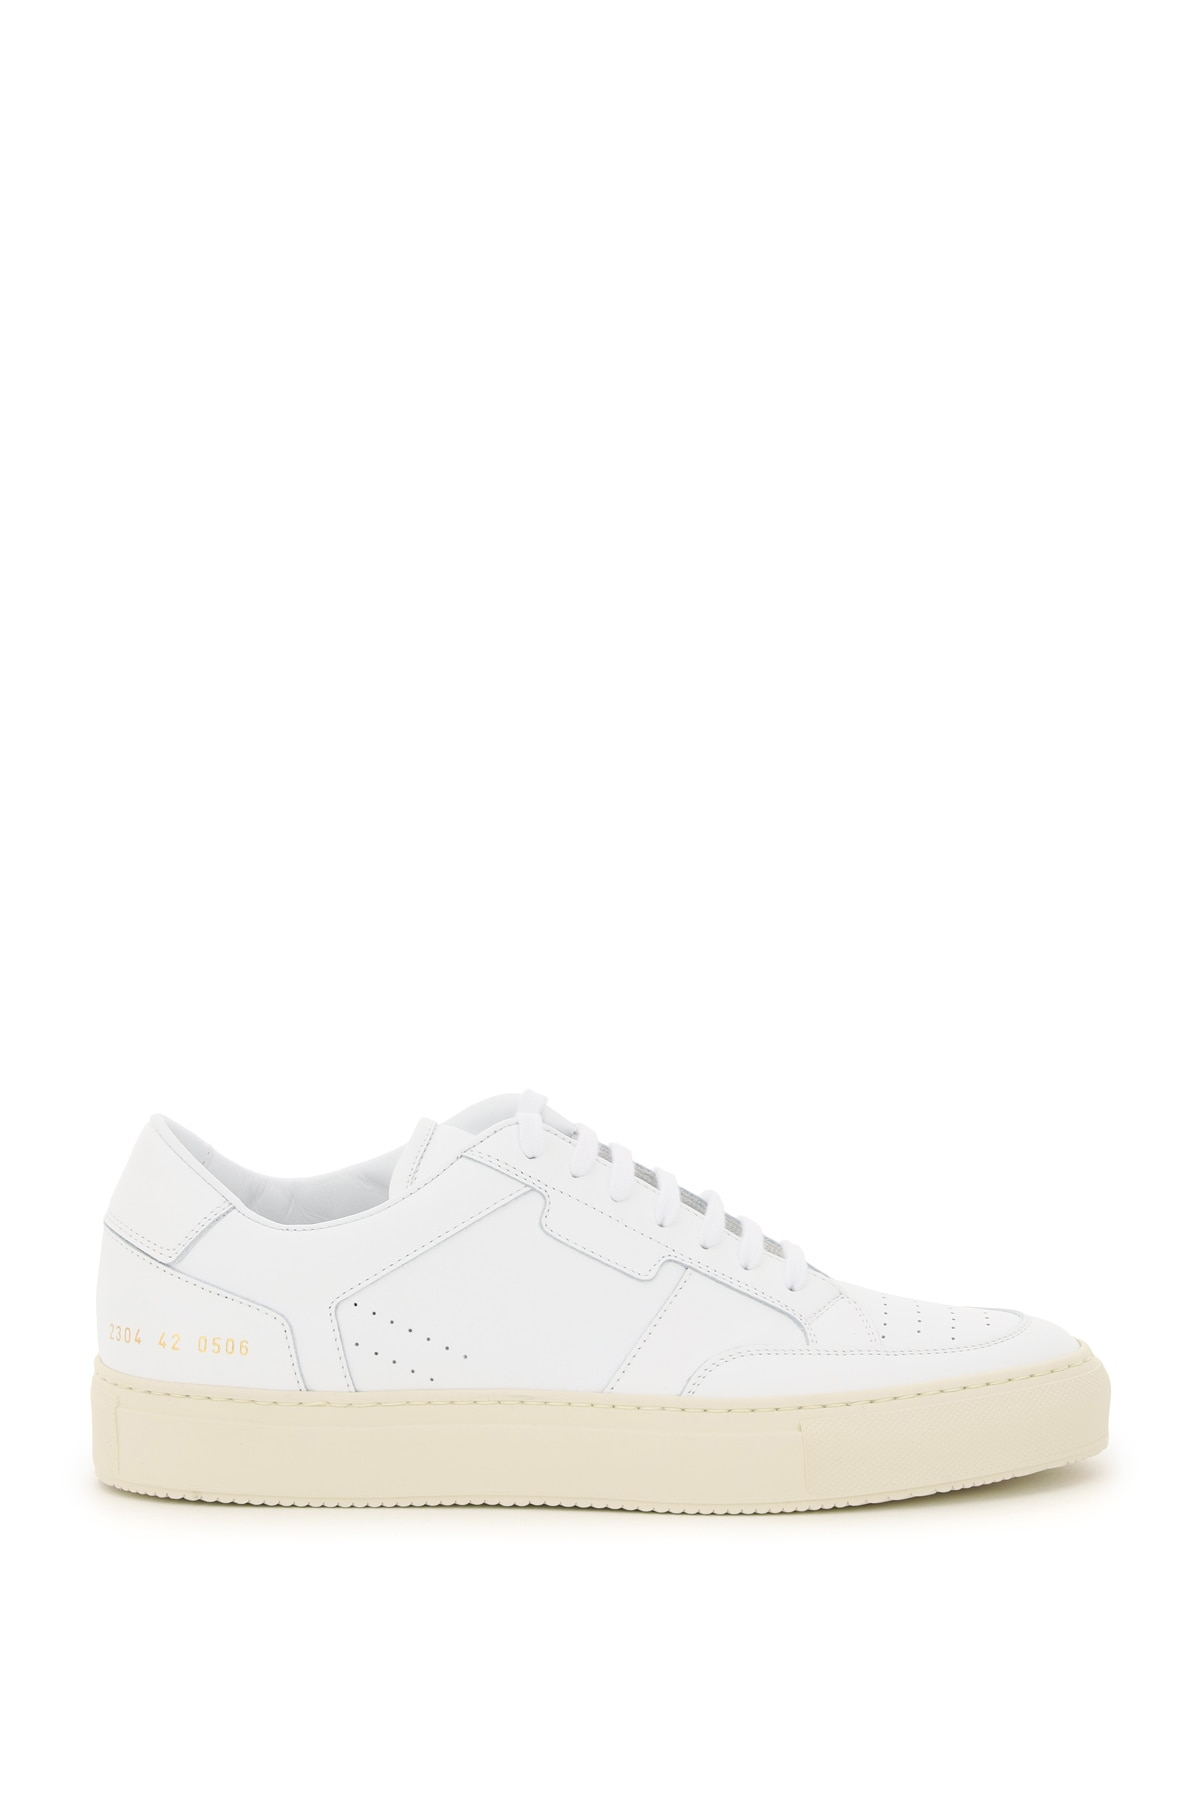 COMMON PROJECTS ZEUS PROTOTYPE LEATHER SNEAKERS 40 White Leather